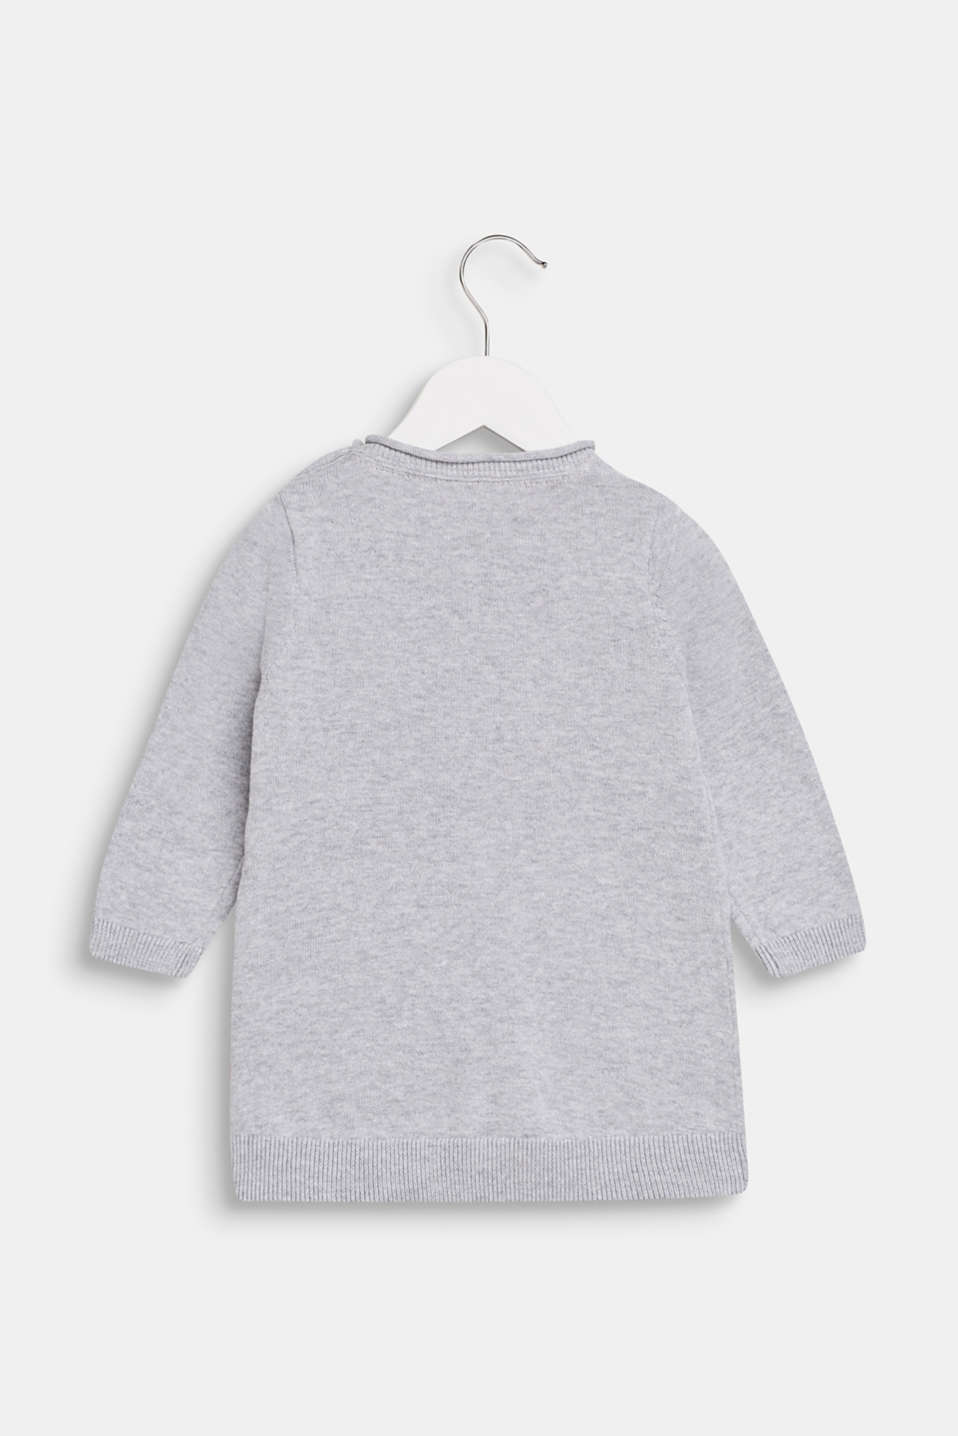 Jumper with a penguin motif, 100% cotton, LCHEATHER SILVER, detail image number 1